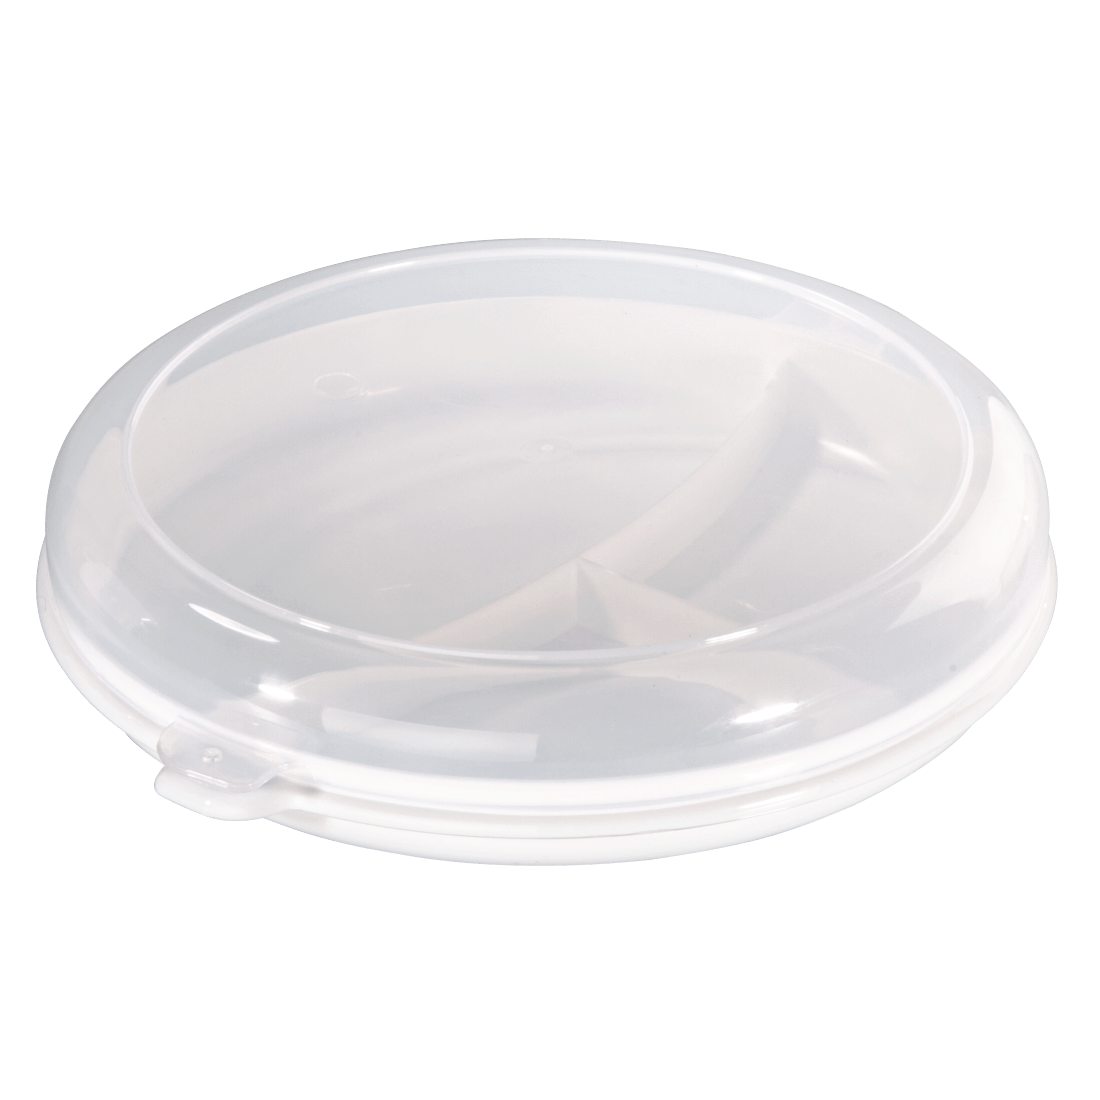 Microwave Plate 00111043 Xavax Microwave Plate Separate With Cover Xavax Eu